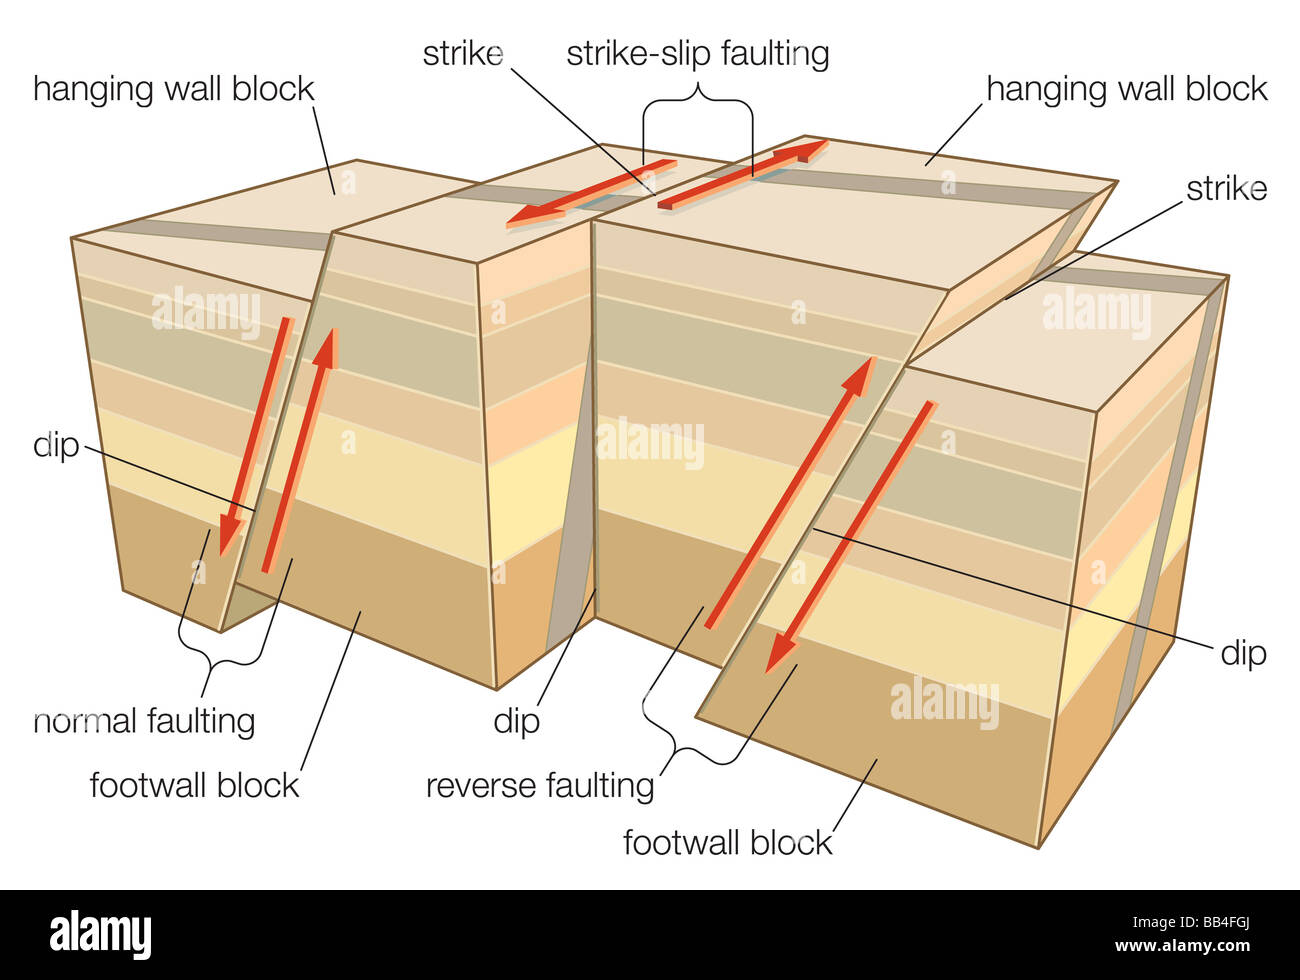 Types of faulting in tectonic earthquakes. - Stock Image